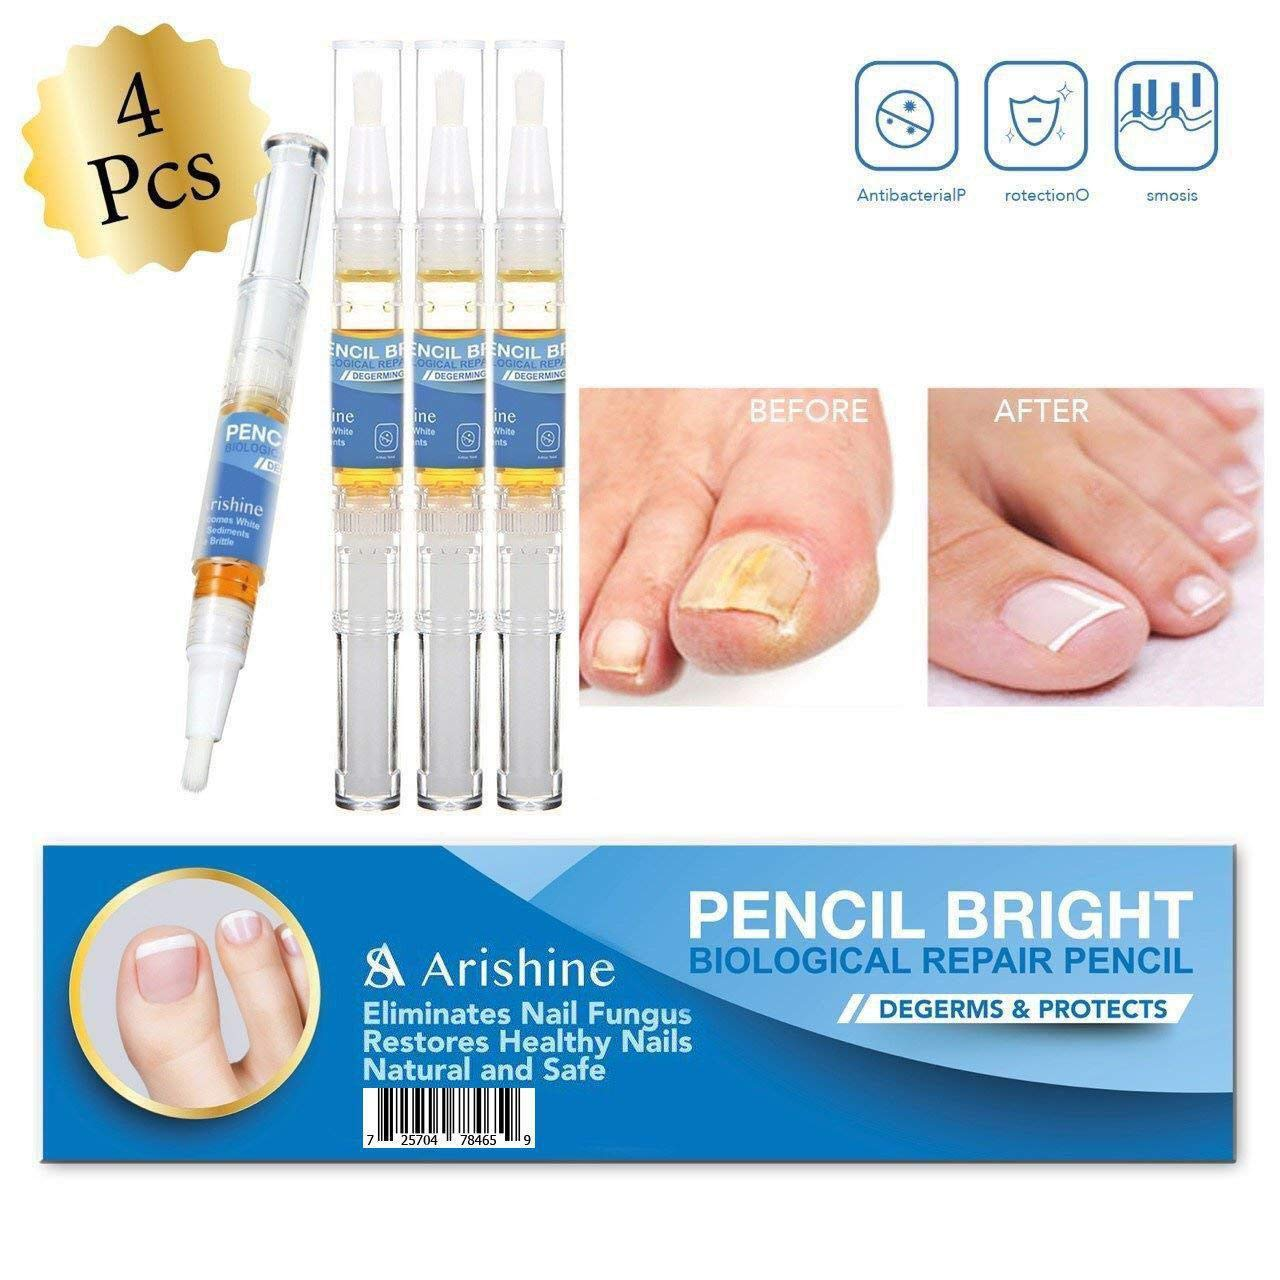 Arishine Toenail Fungus Treatment, Fungus Stop, Maximum Strength Anti-Fungal Nail Solution, Effective Against Nail Fungus, Anti-Fungal Toenails, Fingernails Solution, 4pcs by Arishine